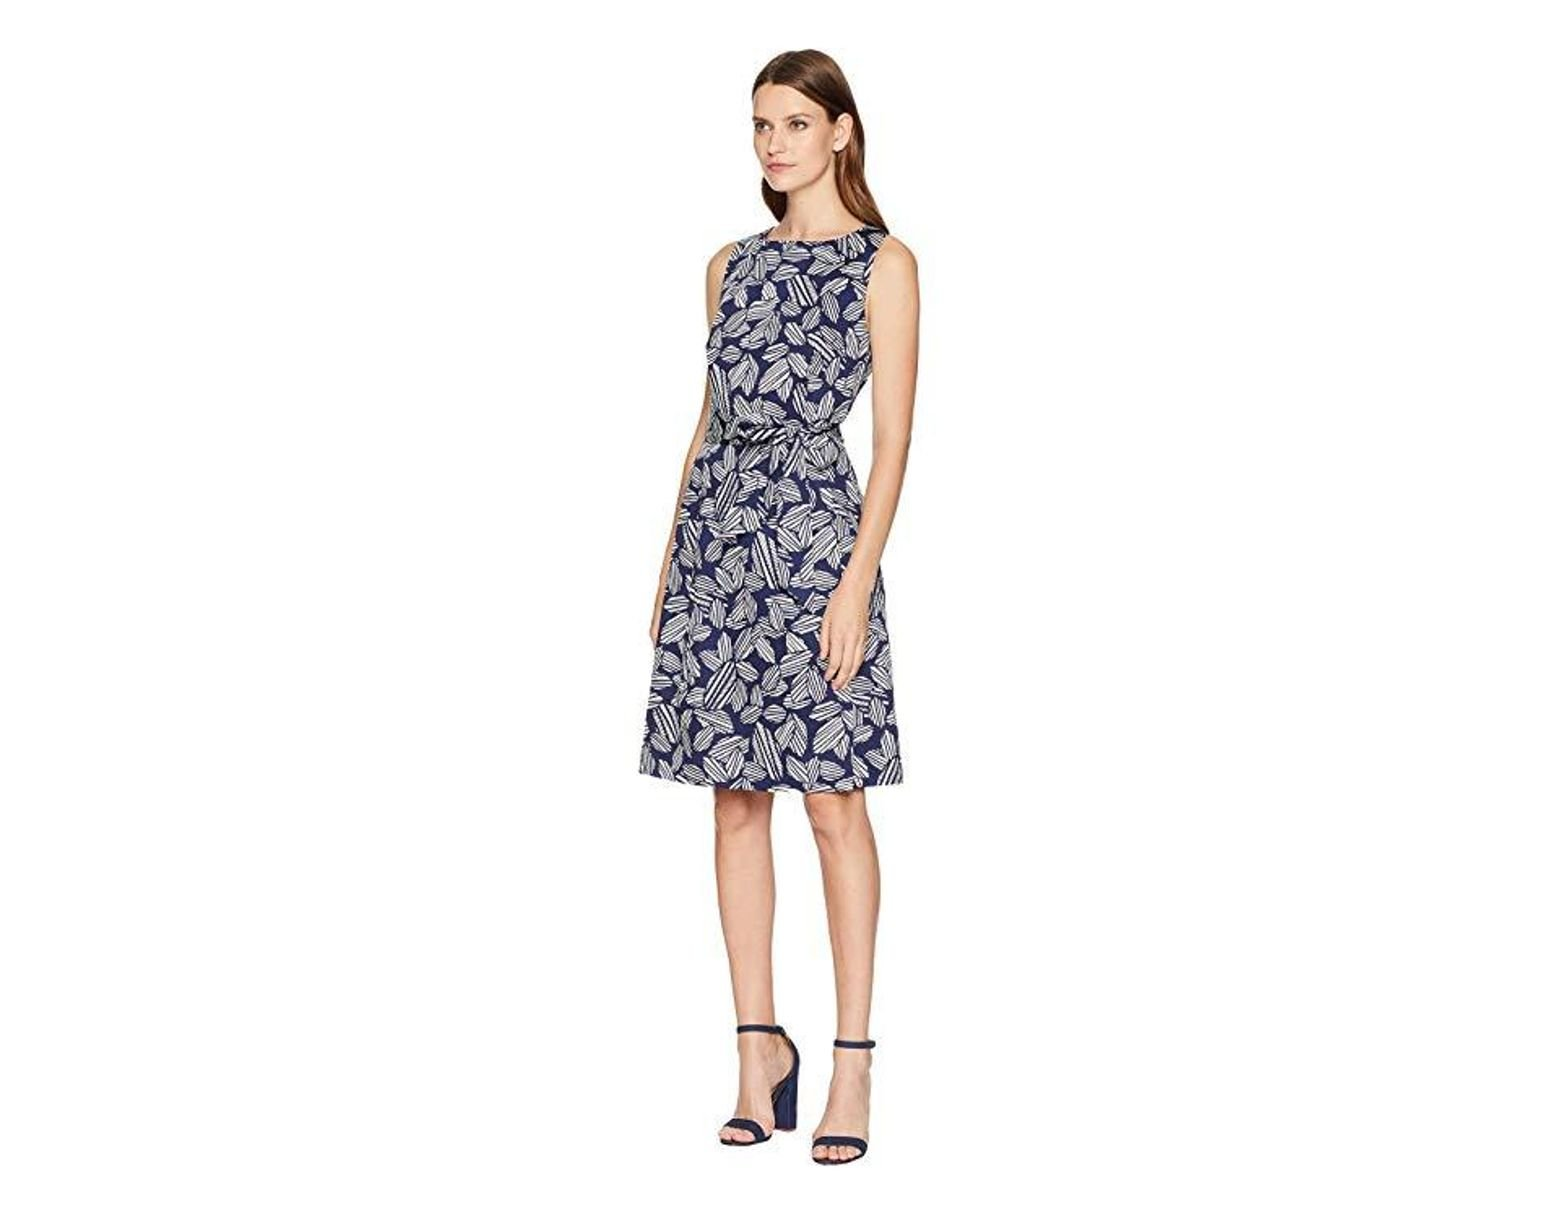 04a36dd75d2d8 Anne Klein Fit Flare Dress With Sash (eclipse/white) Dress in Blue - Lyst